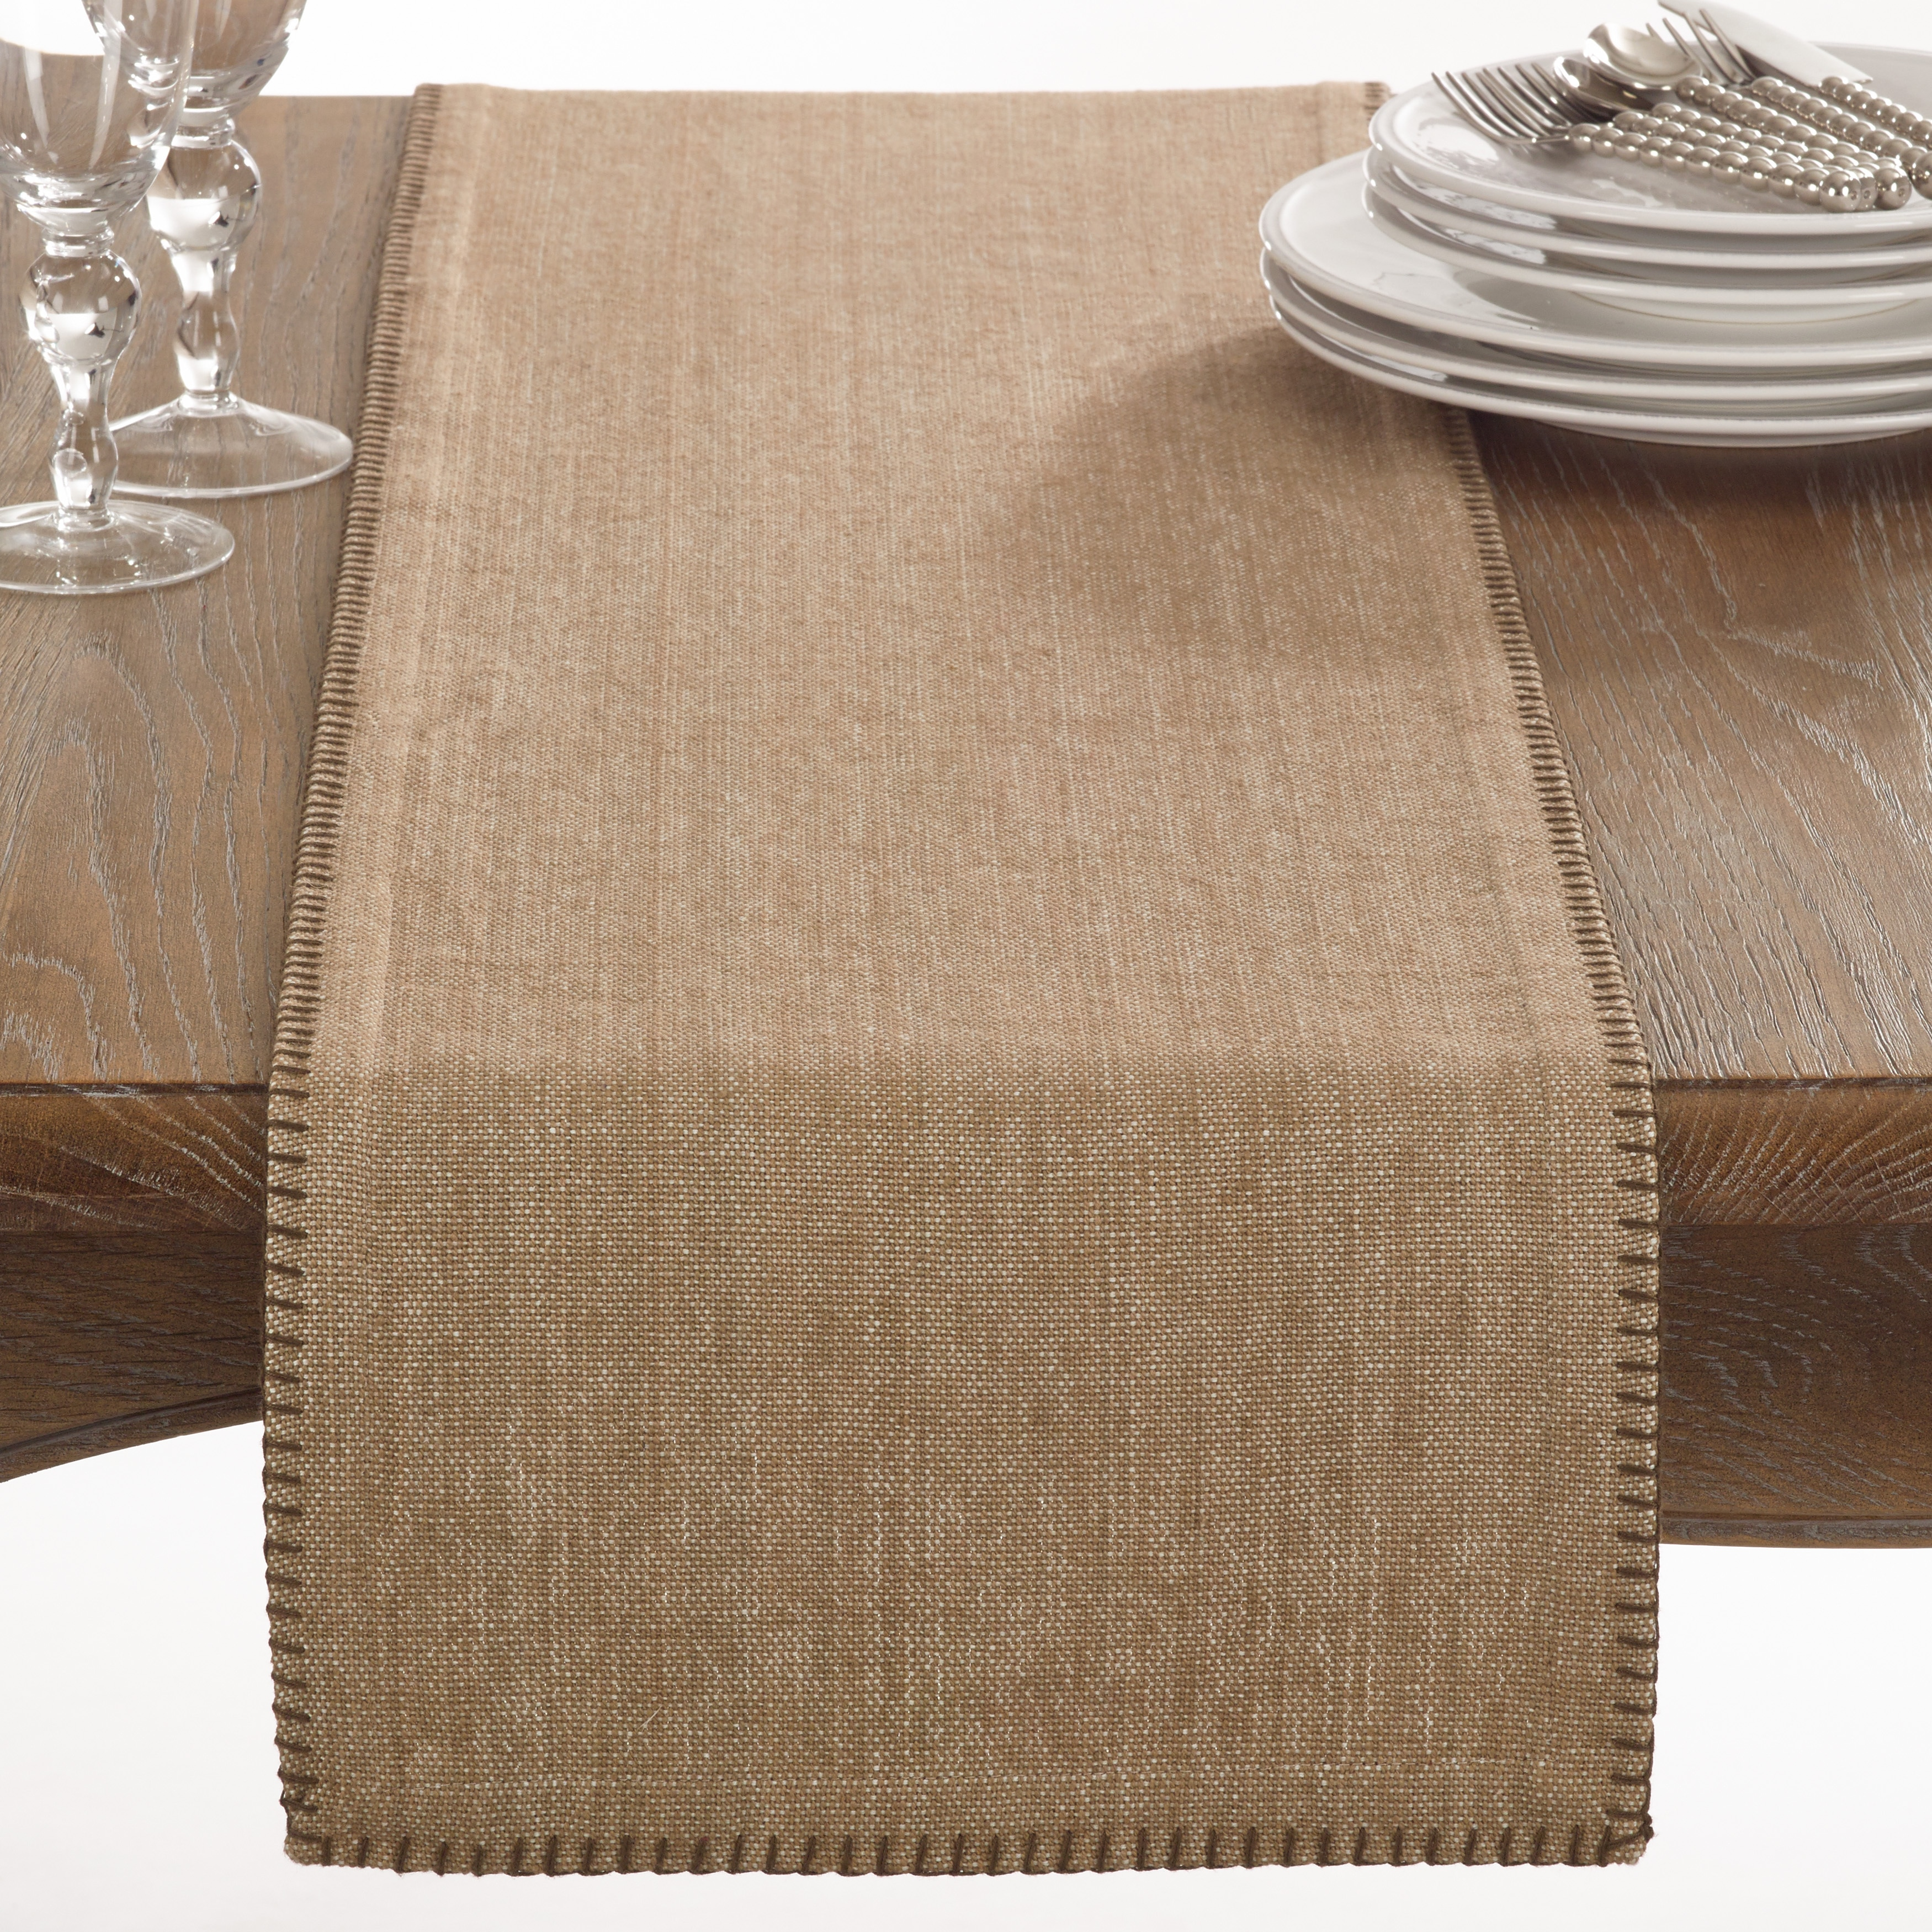 Incroyable Shop Celena Collection Whip Stitched Design Cotton Table Runner   On Sale    Free Shipping Today   Overstock.com   12137567